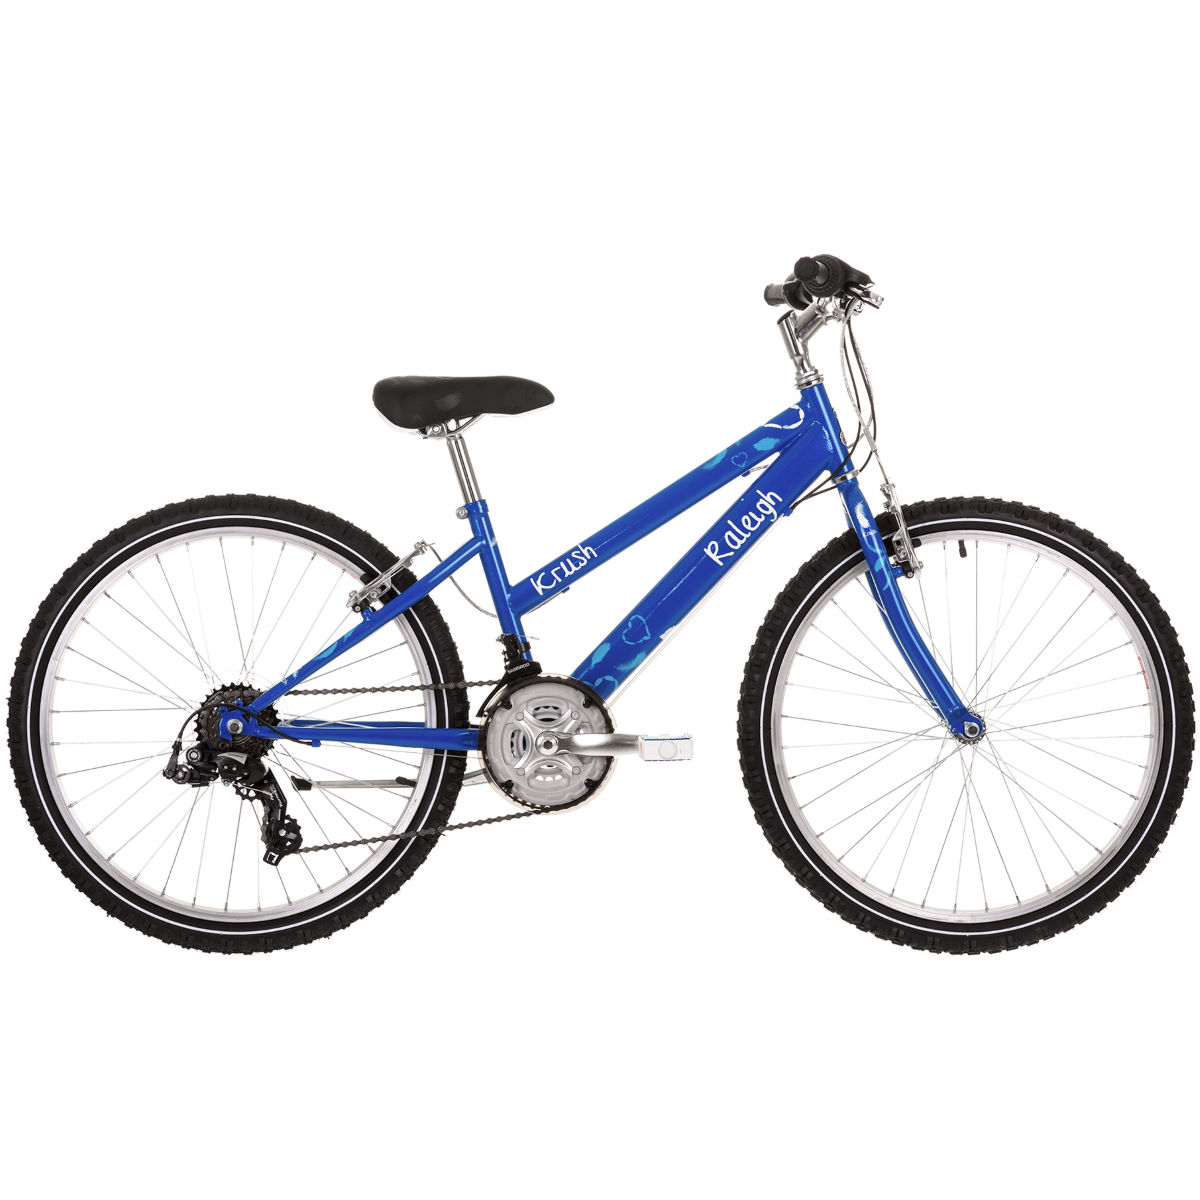 Vélo Enfant Raleigh Krush 24 pouces - 24'' Wheel Stock Bike